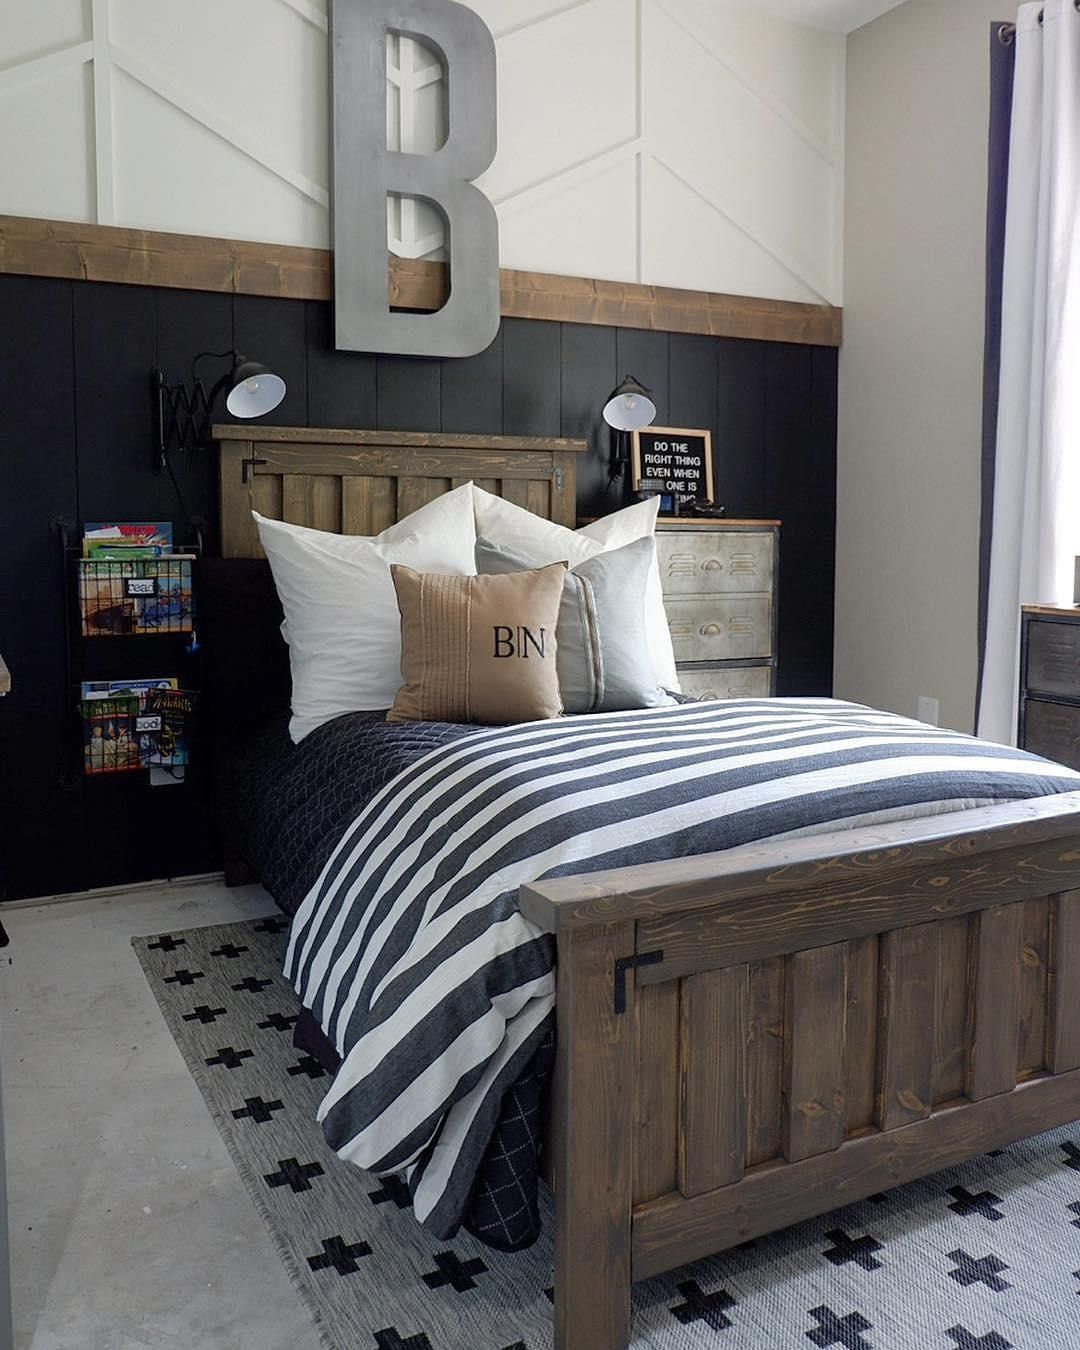 Idee Deco Chambre Garcon Super Heros 42 sophisticated boys room ideas that'll win all the cool